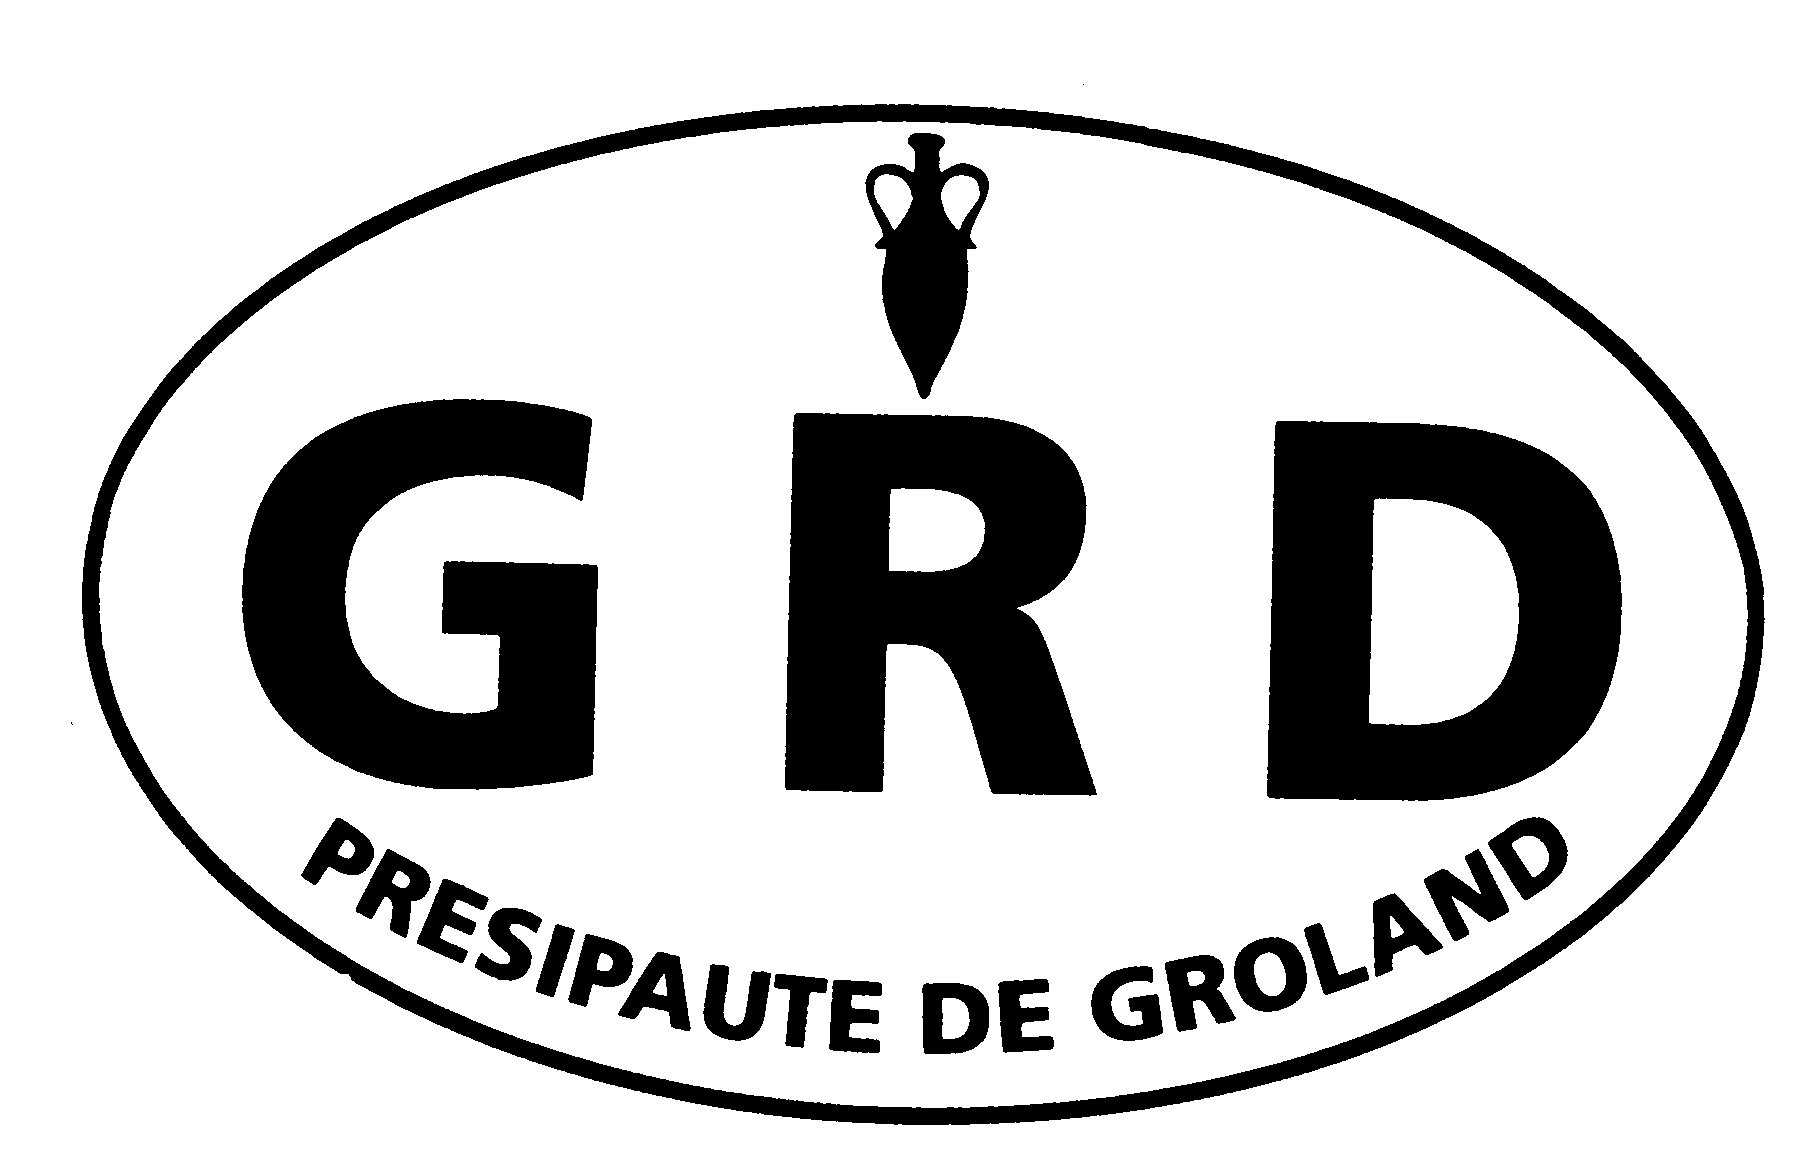 http://nicolinux.fr/wp-content/2008/10/groland-logo1.jpg